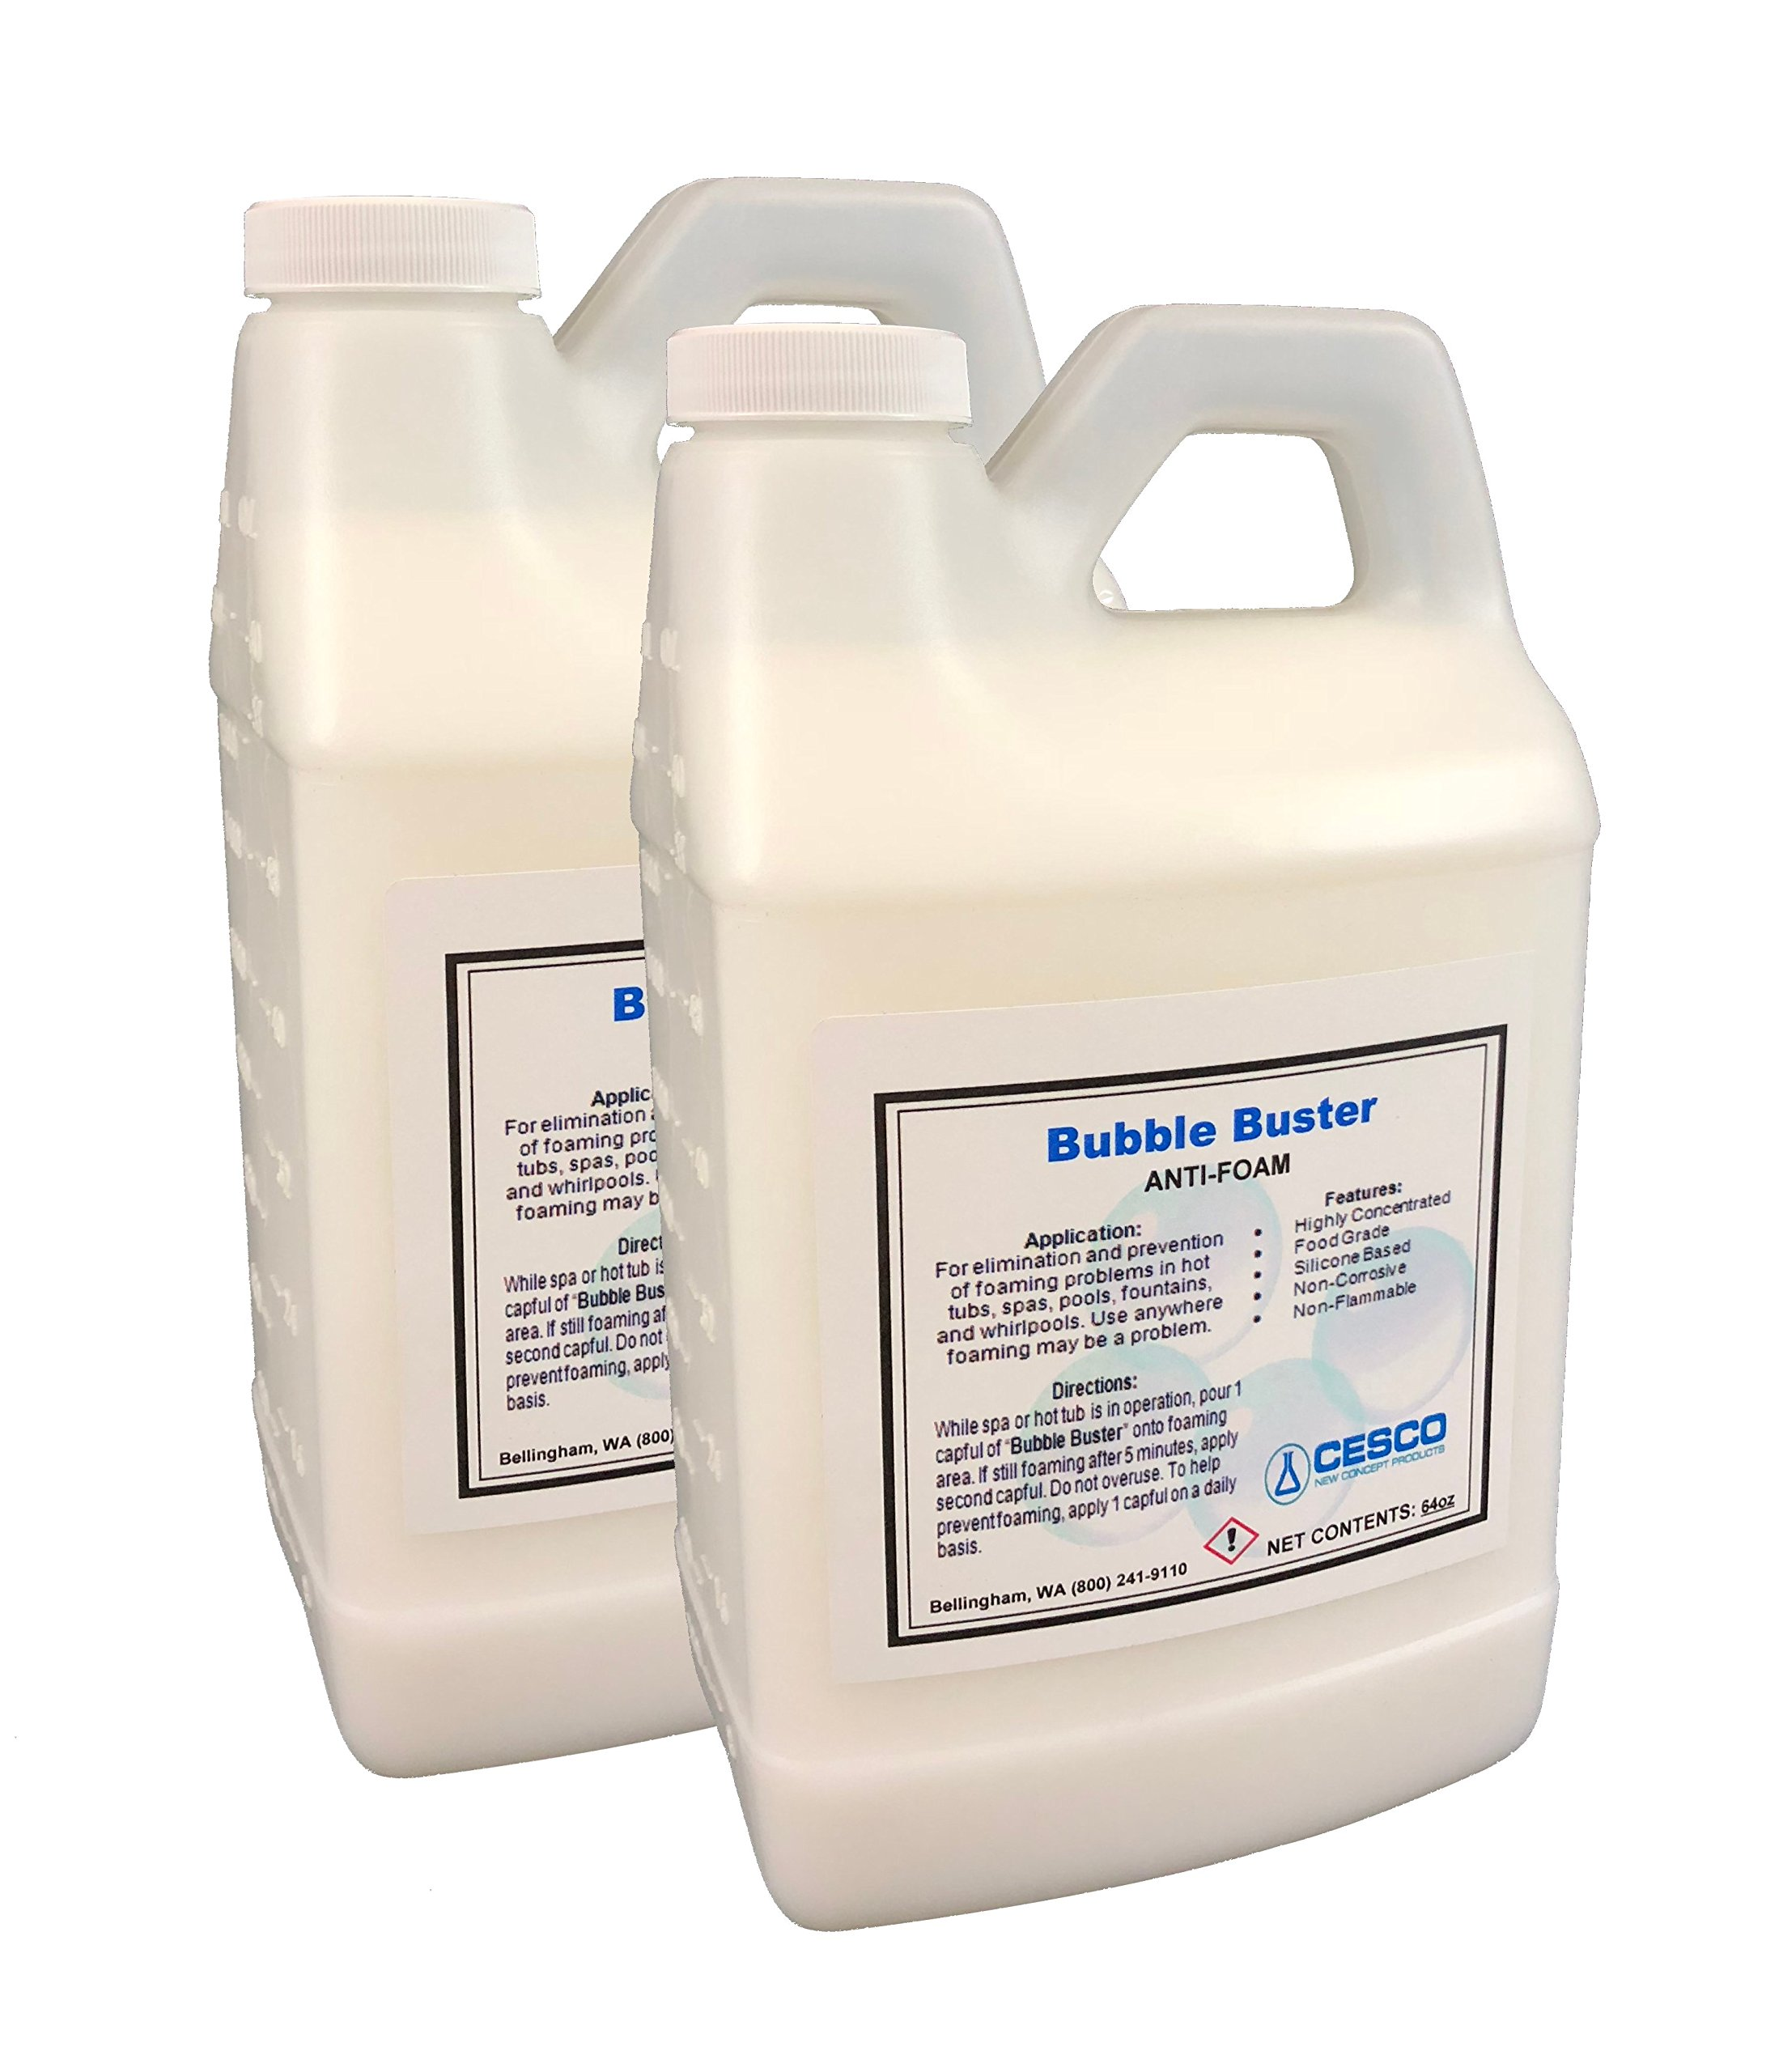 Cesco Bubble Buster Anti Foam - Concentrated Formula - 1 gallon/128oz (2 x 64oz) Defoamer for Hot Tub Spa Pools Fountains by Cesco